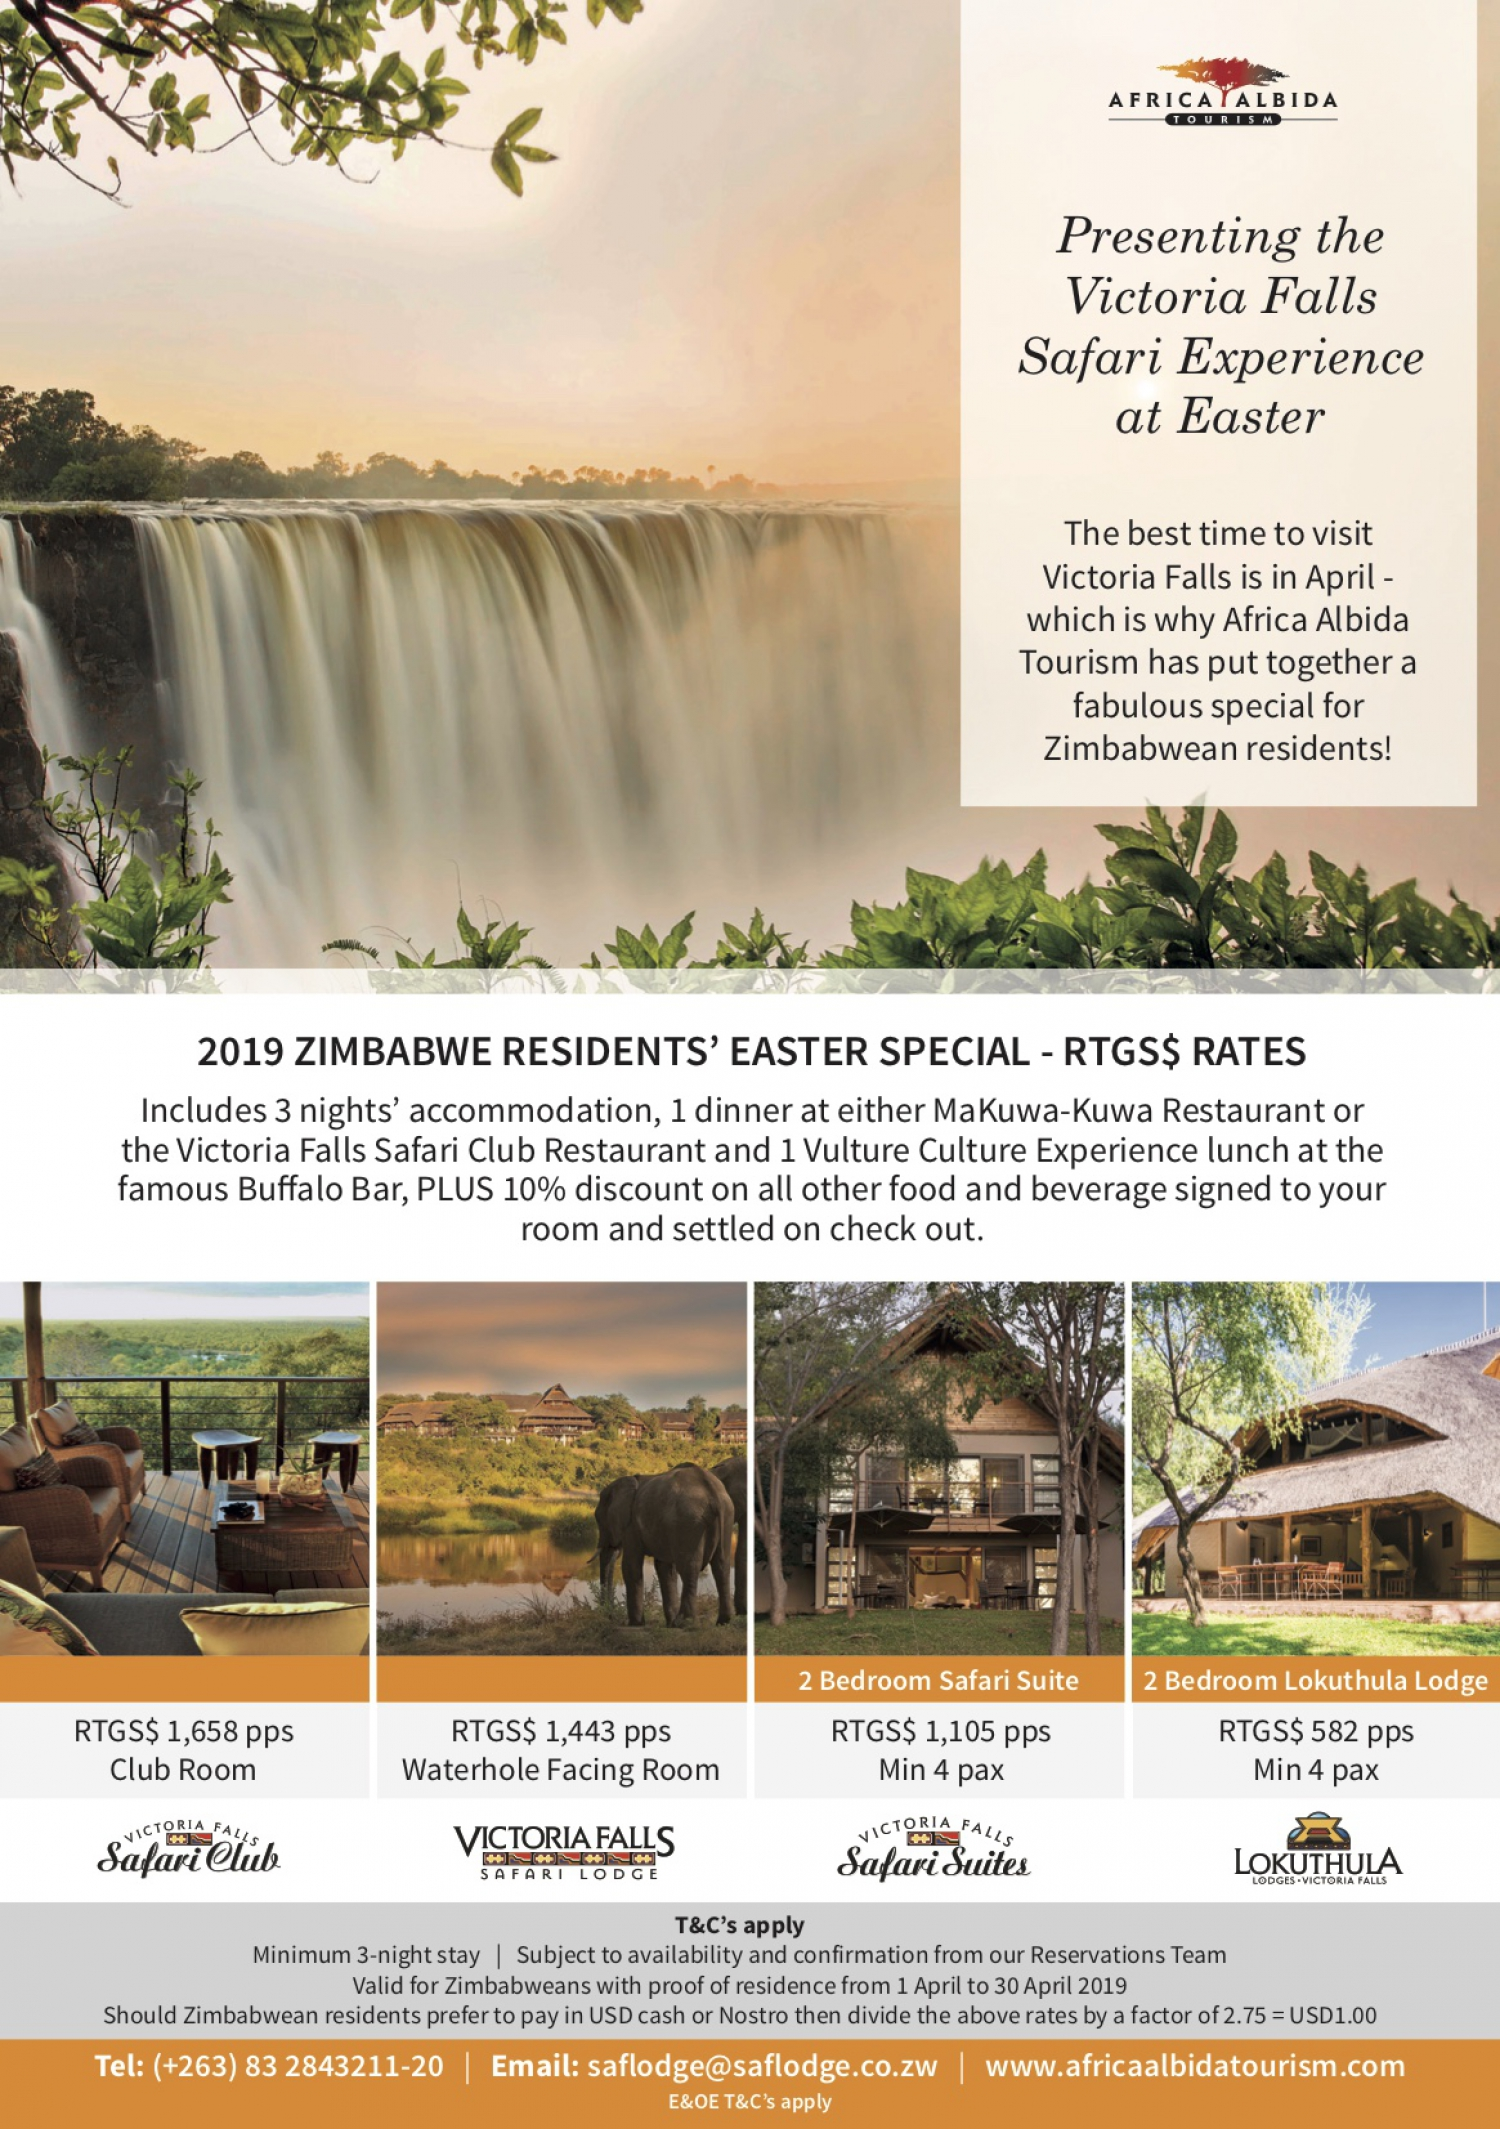 2019 Zimbabwe Residents' Easter Special - RTGS$ Rates